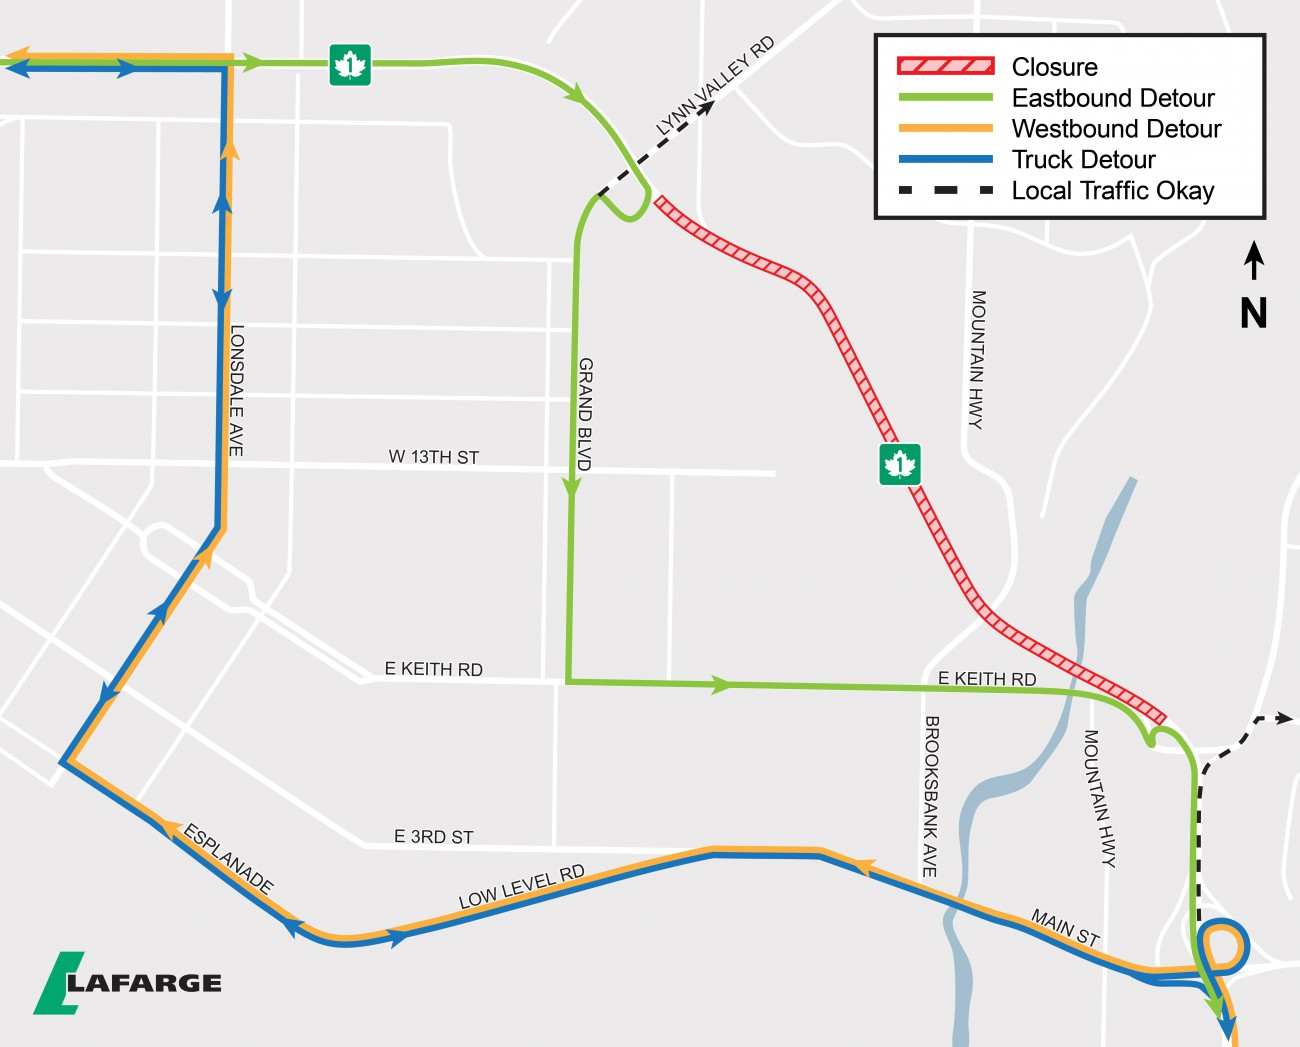 Map showing detour routes for Hwy closures in April and May, 2019